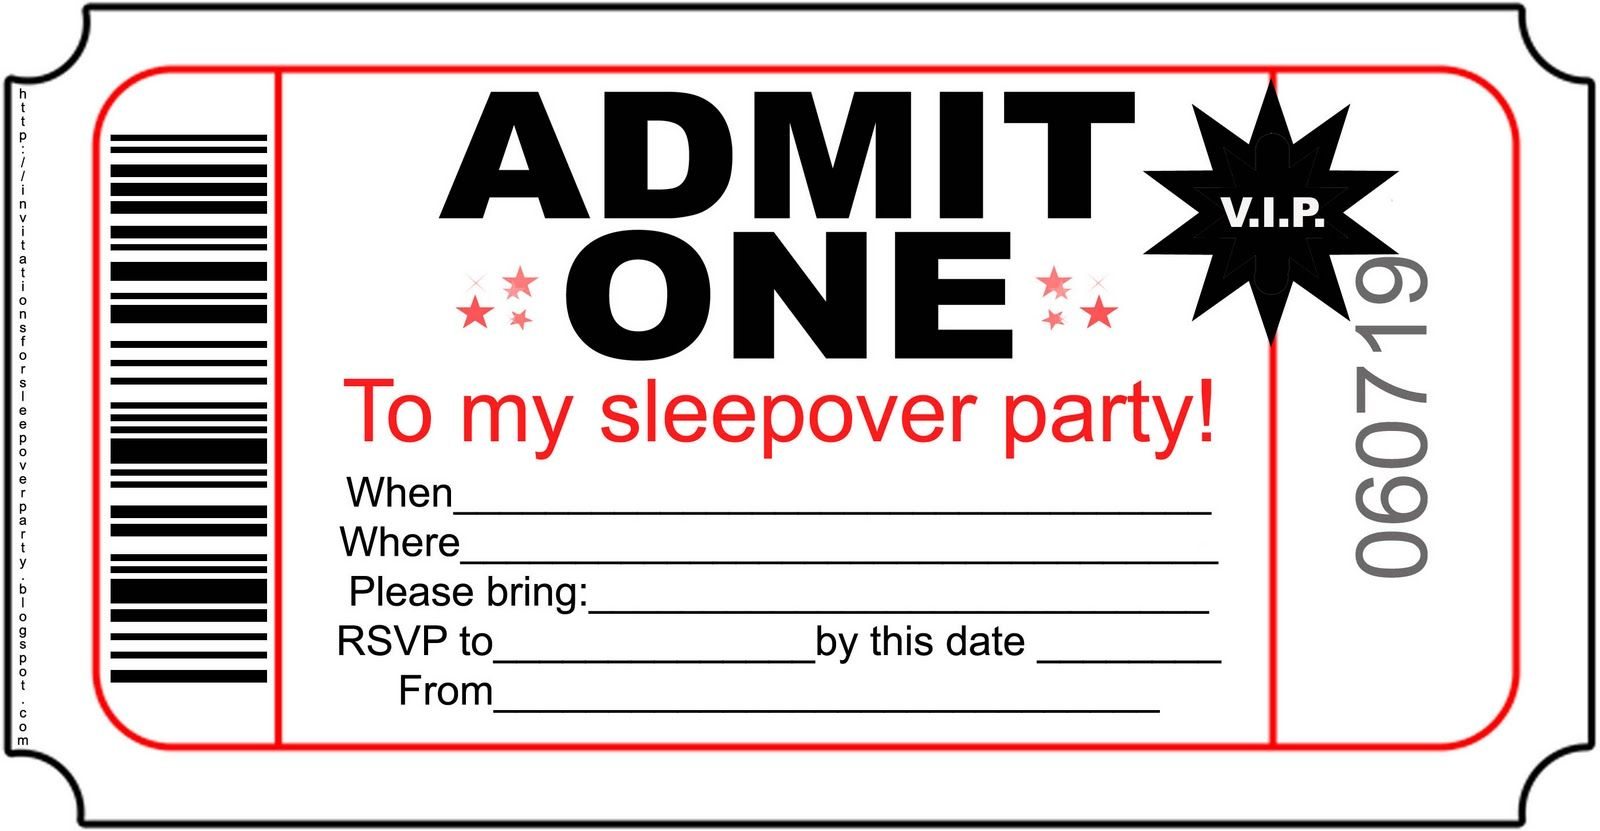 Free printable sleepover invitation templates idees pinterest free printable sleepover invitation templates stopboris Image collections